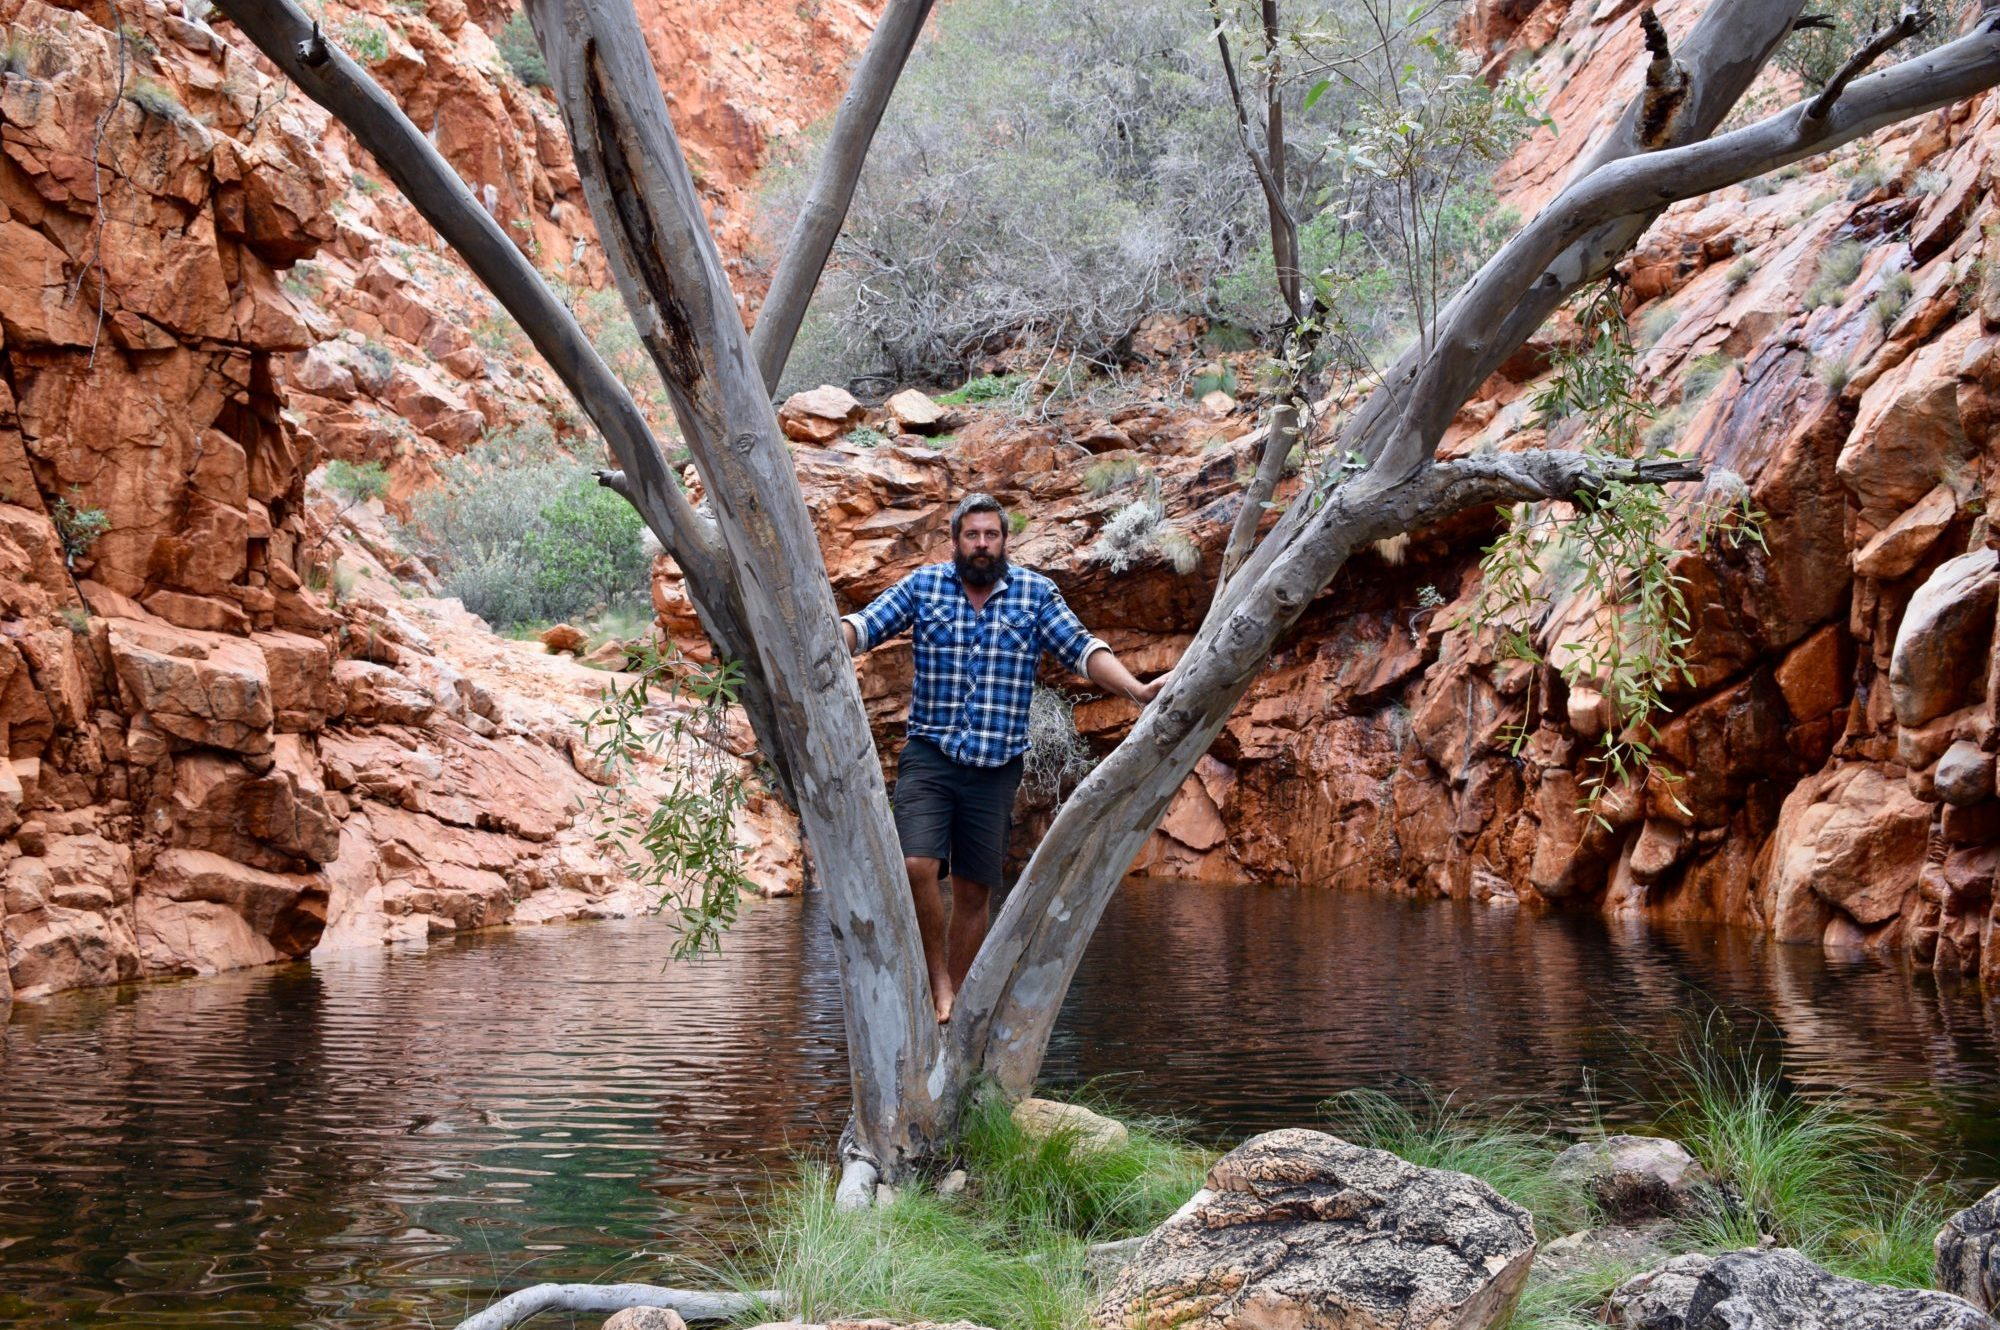 Desert Waterfalls And Rock Pools – Sandy Blight Track, WA/NT